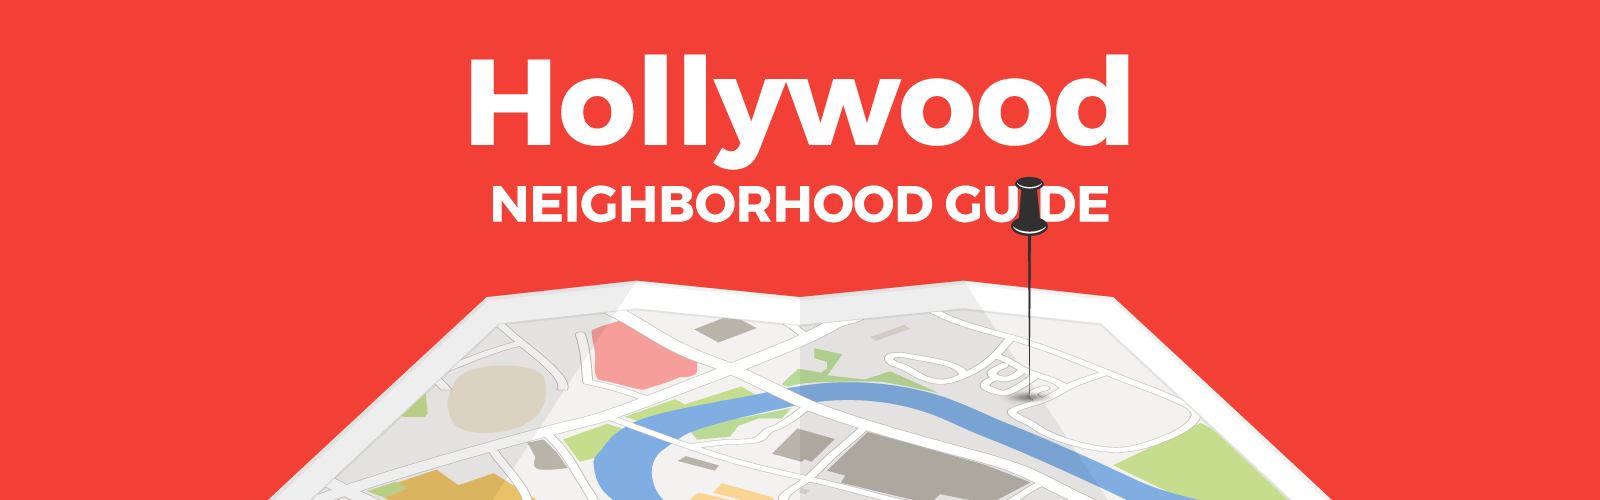 Hollywood NE Portland Neighborhood Guide